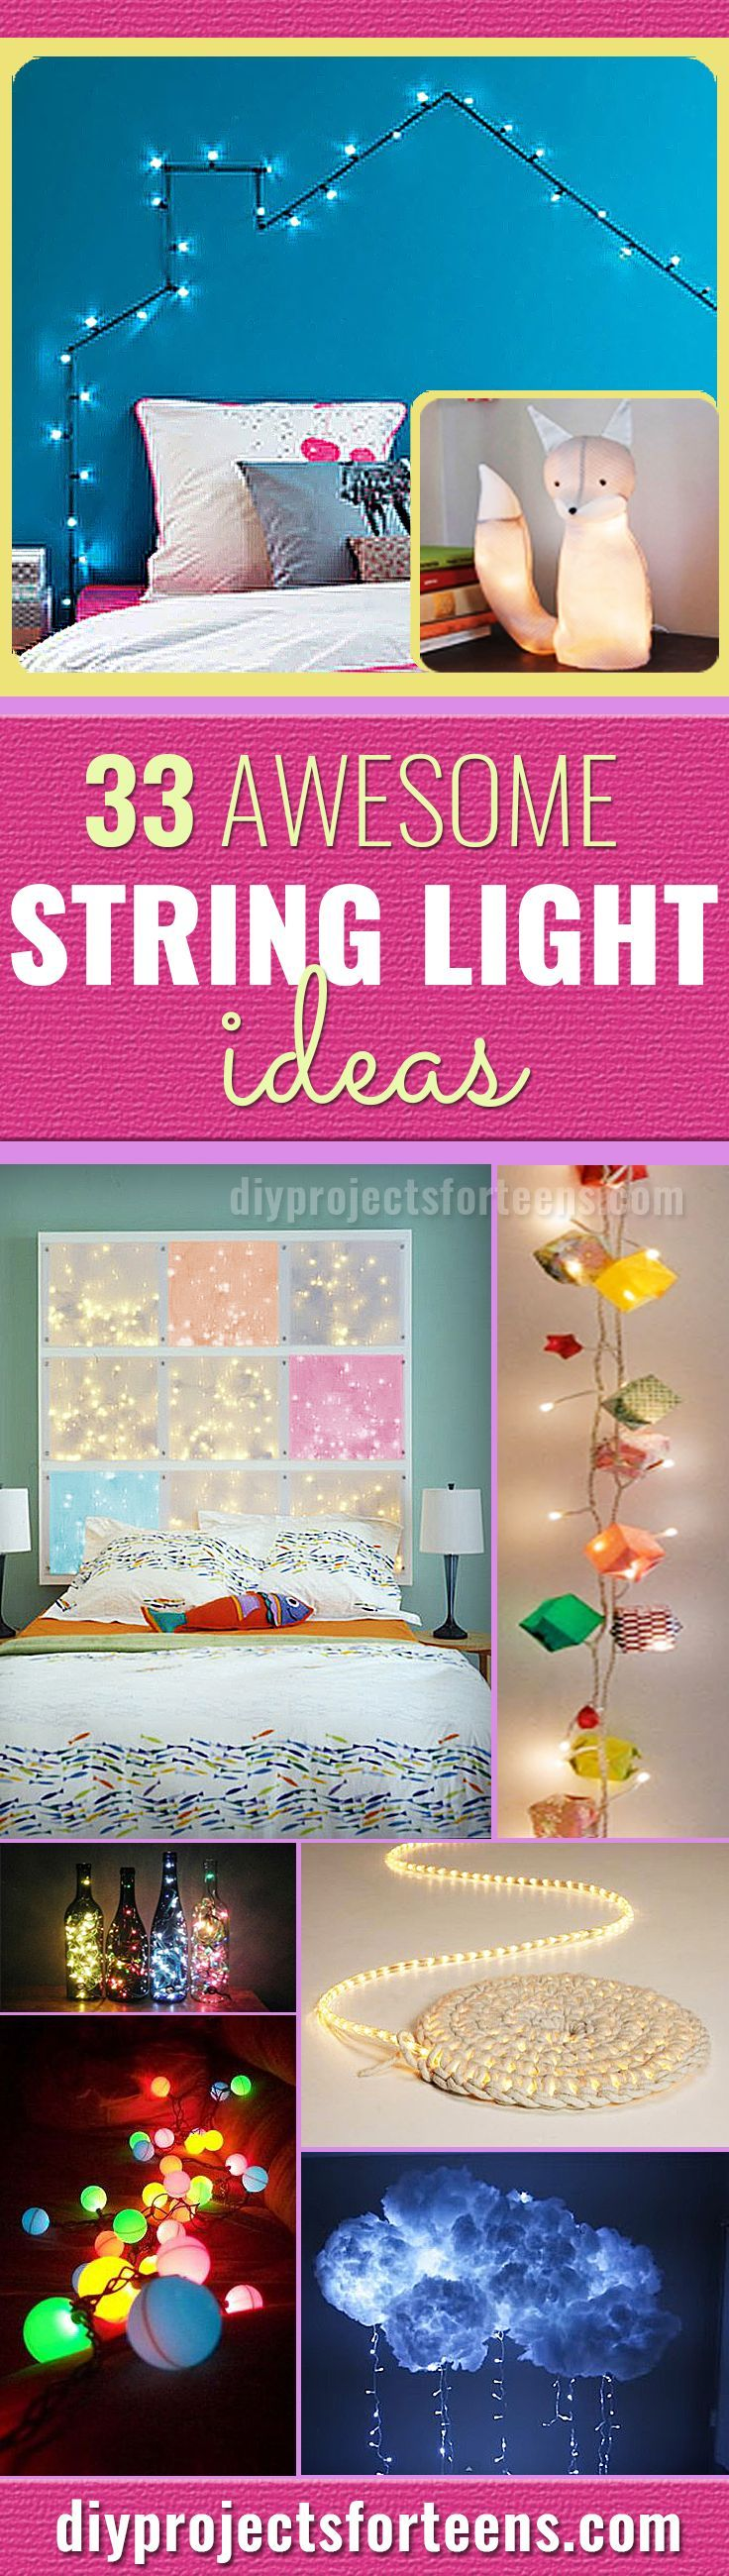 Bedroom christmas lights quotes - 33 Awesome Diy String Light Ideas